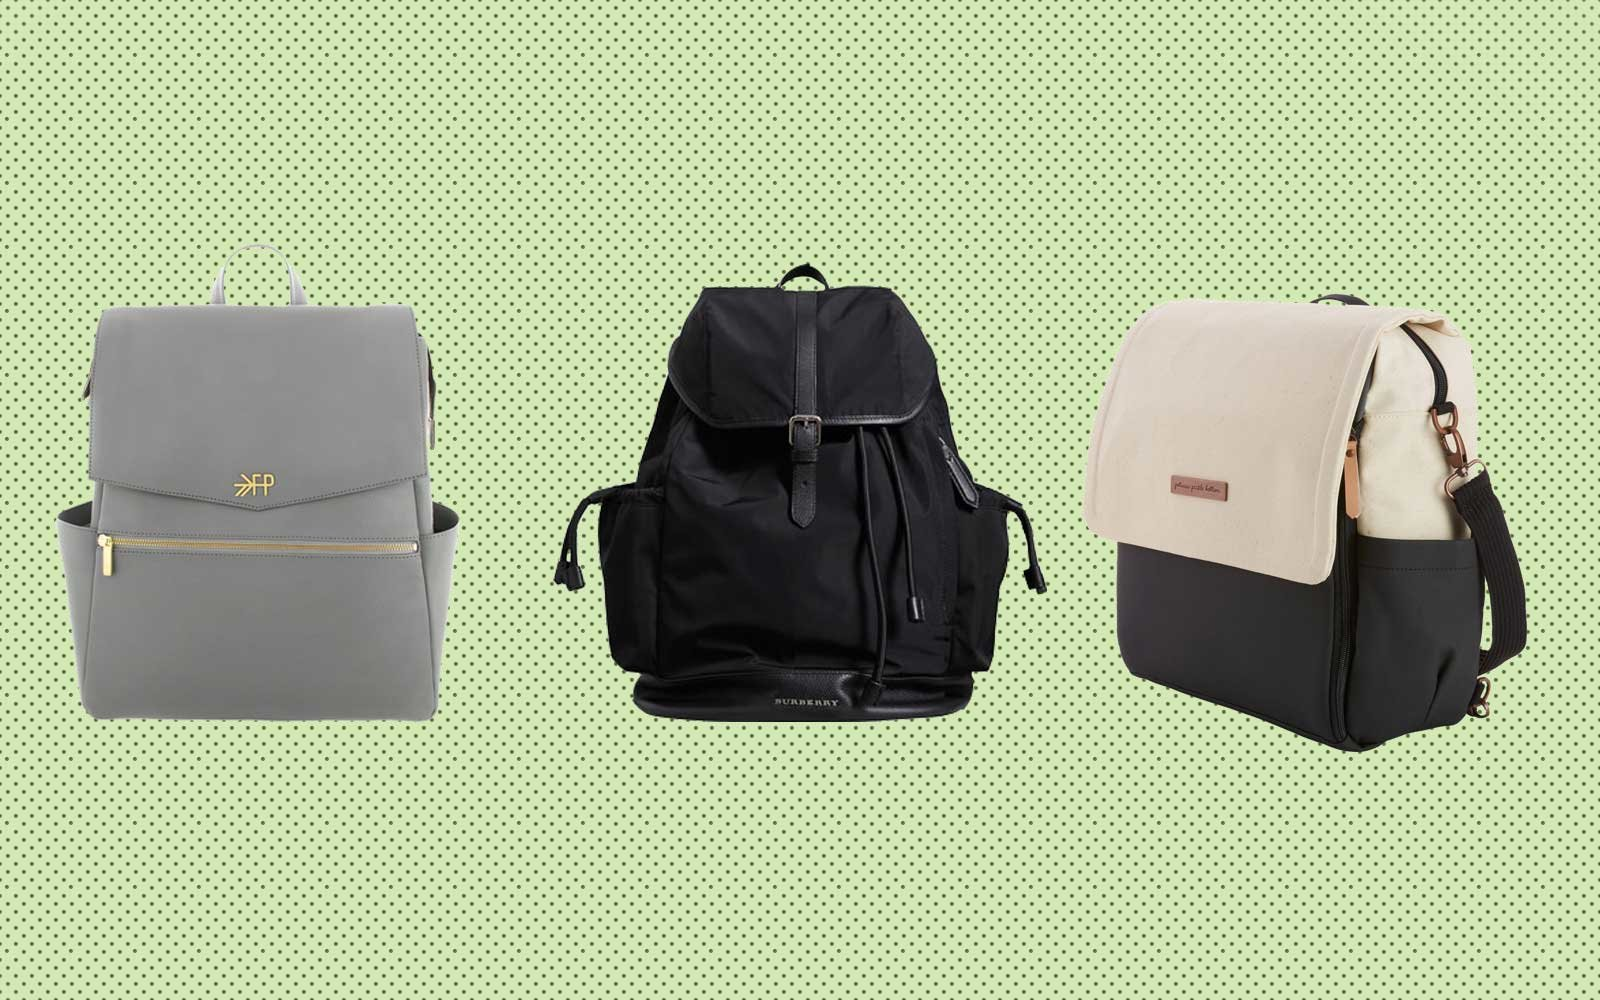 The Best Diaper Bags and Backpacks for Traveling